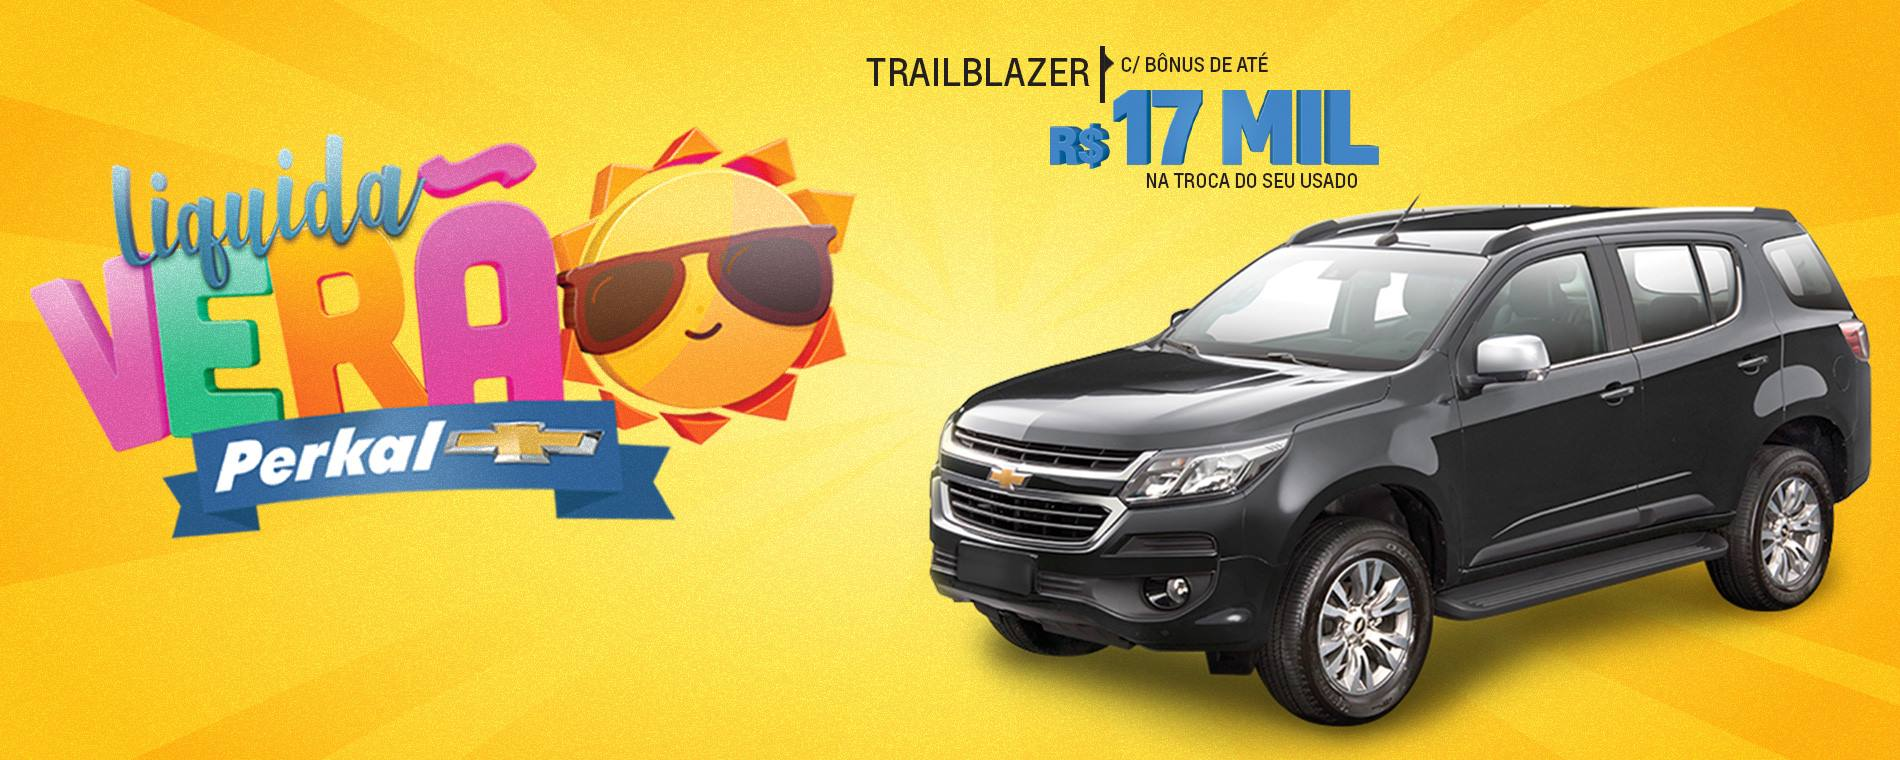 oferta-trailblazer